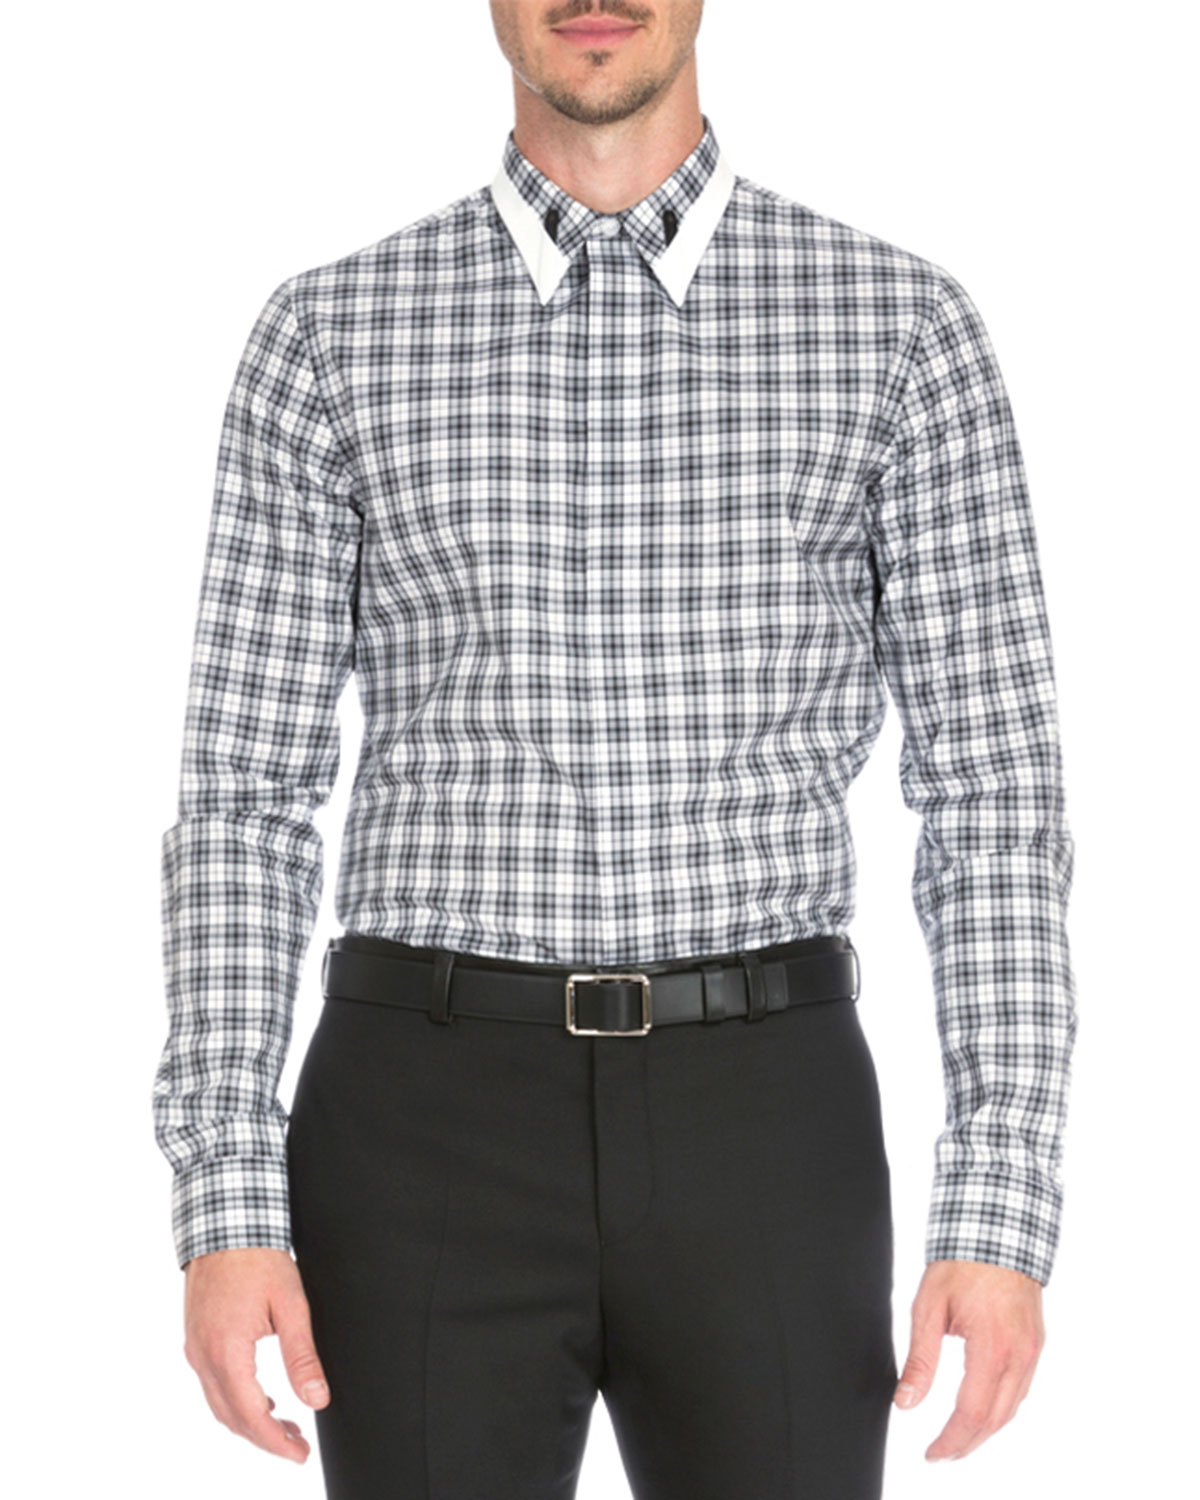 Plaid Shirt with Contrast Collar, Black